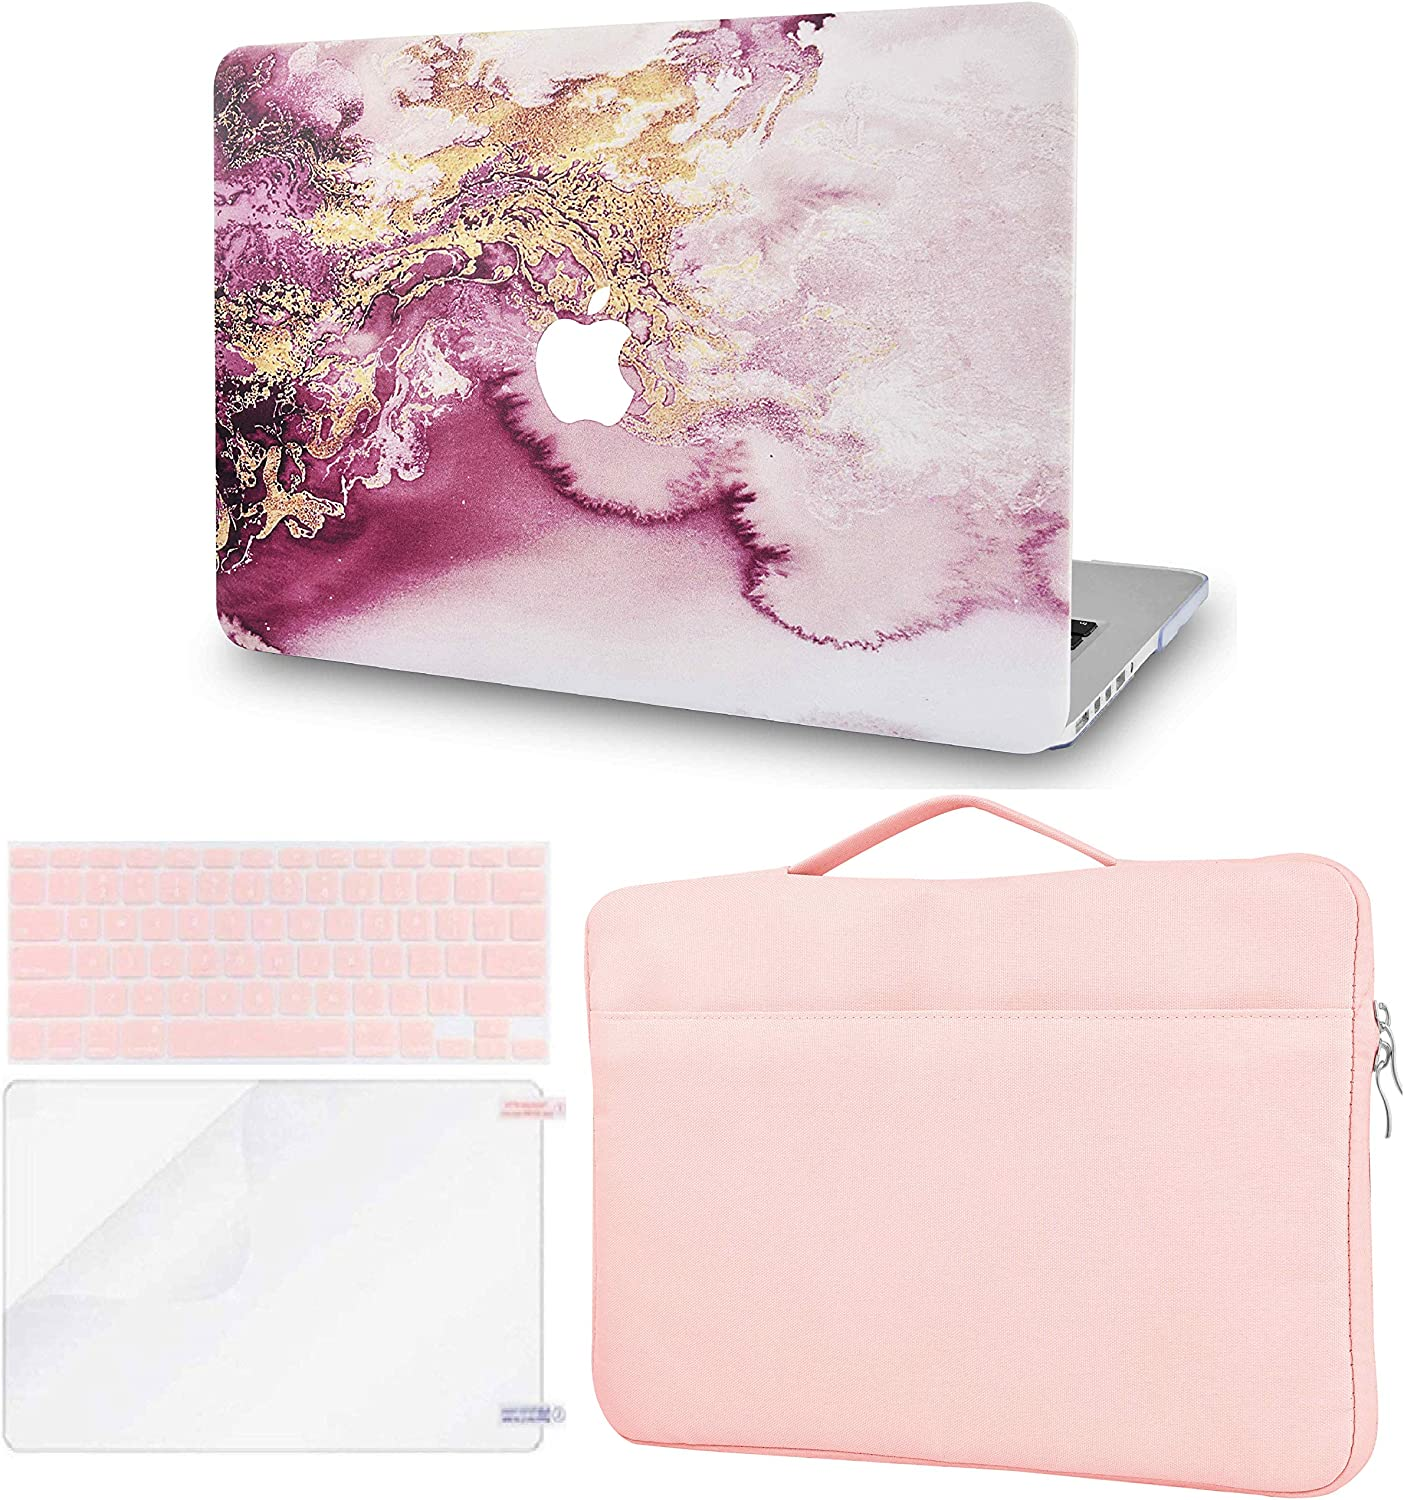 LuvCase 4 in 1 Laptop Case Compatible with MacBookAir 13 Inch (2010-2017) A1466/A1369 (No Touch ID) HardShellCover, Sleeve Bag, Keyboard Cover & Screen Protector (Red Gold Marble)